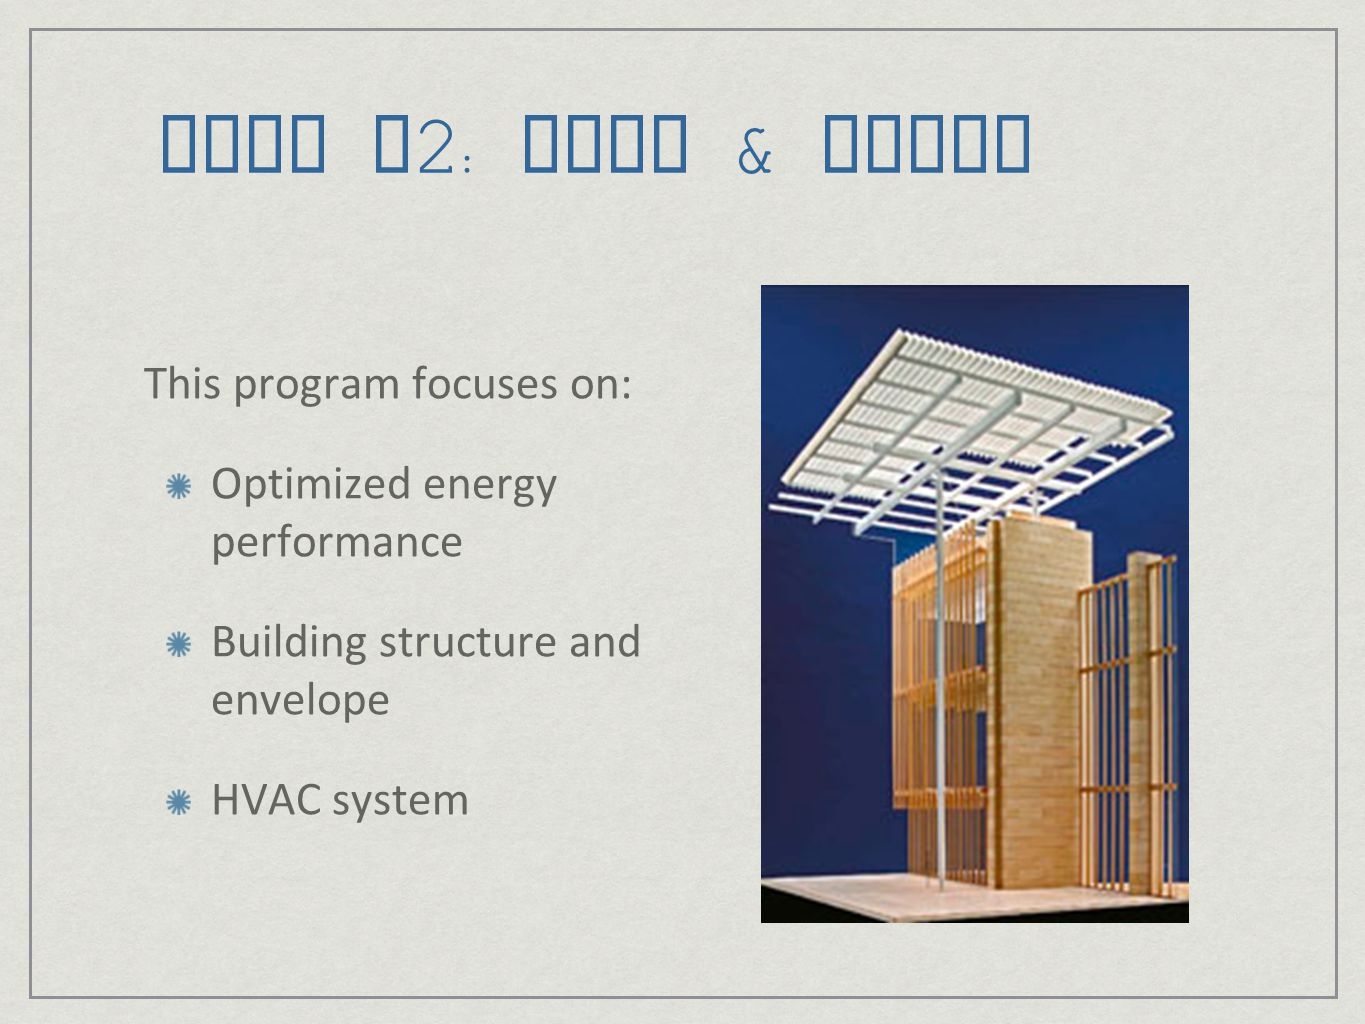 LEED v2: Core & Shell This program focuses on: